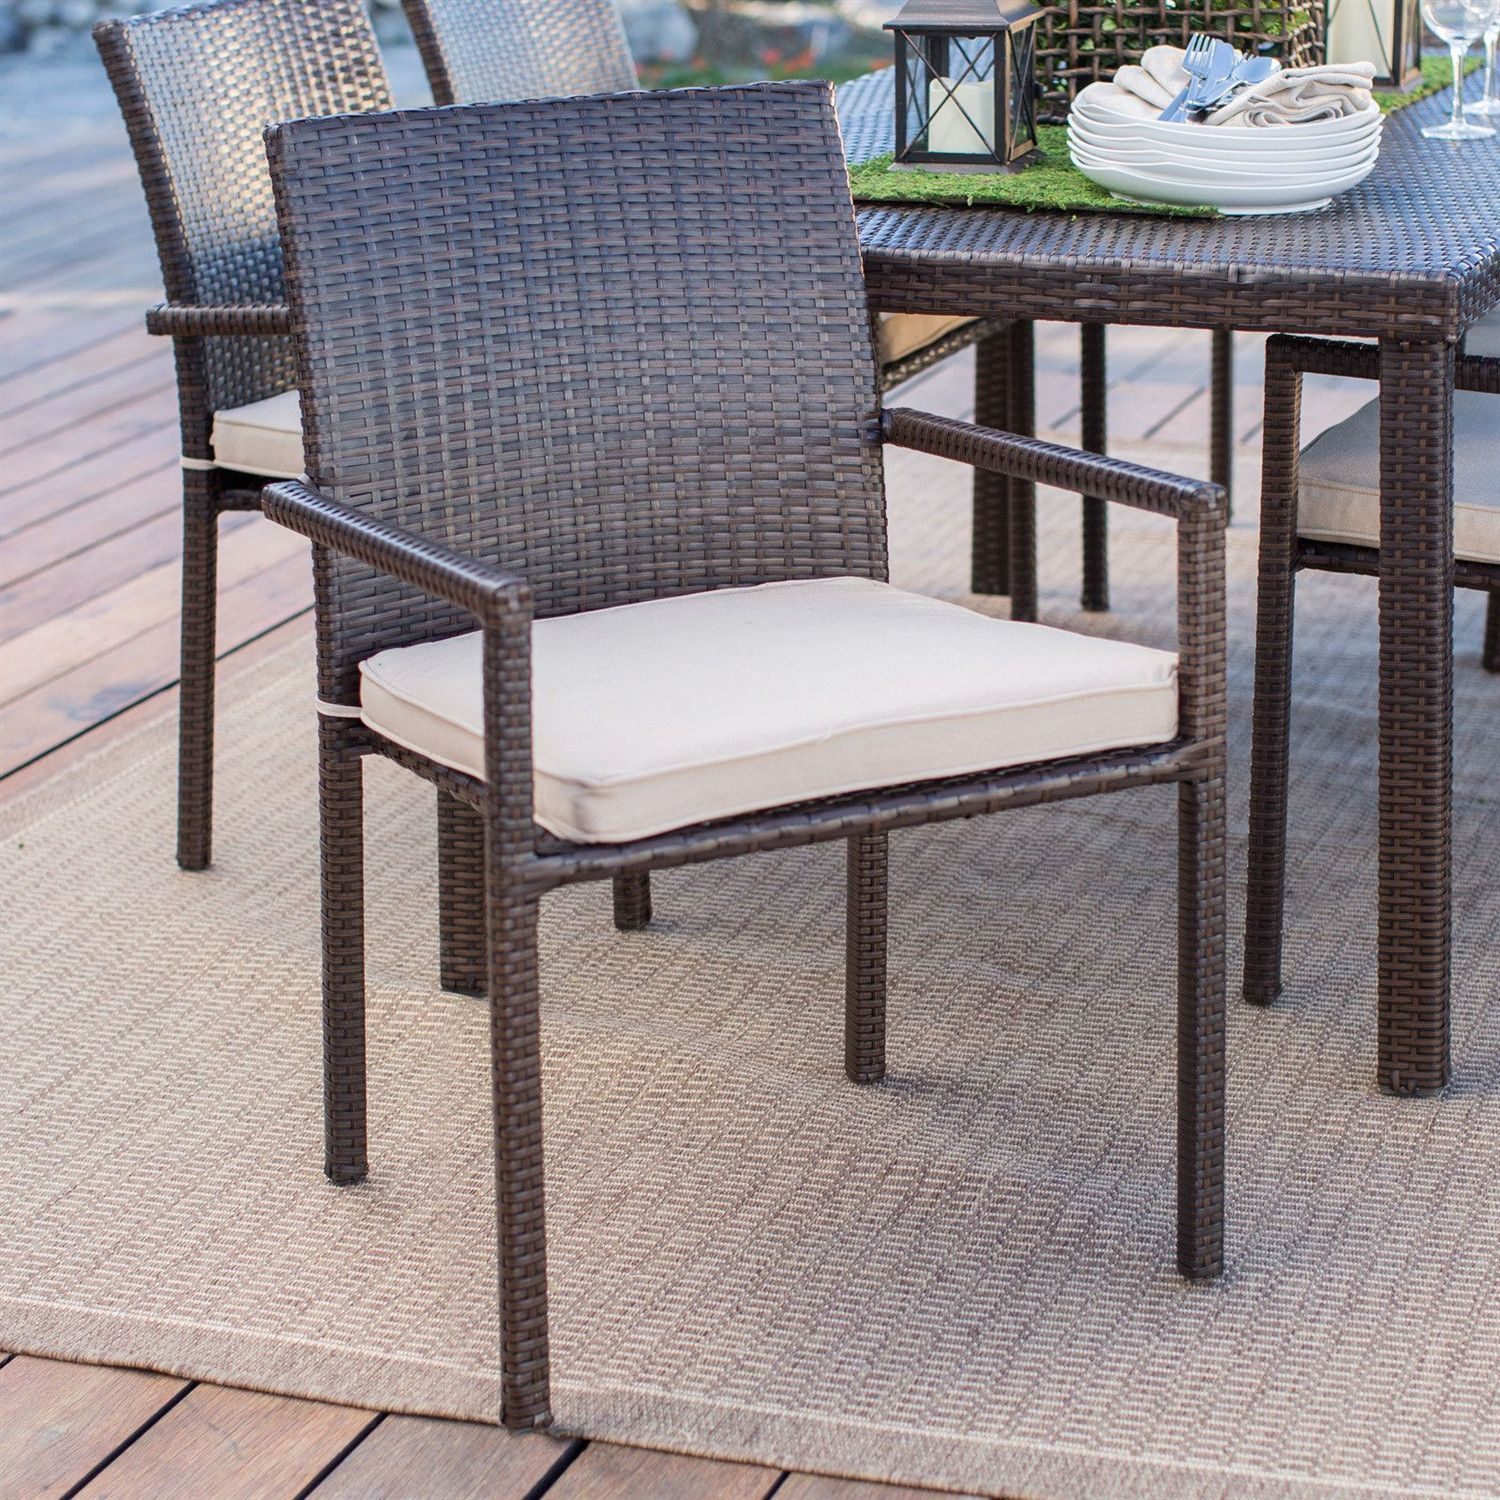 Pleasing Dark Brown Weather Resistant Resin Wicker Dining Chair Alphanode Cool Chair Designs And Ideas Alphanodeonline